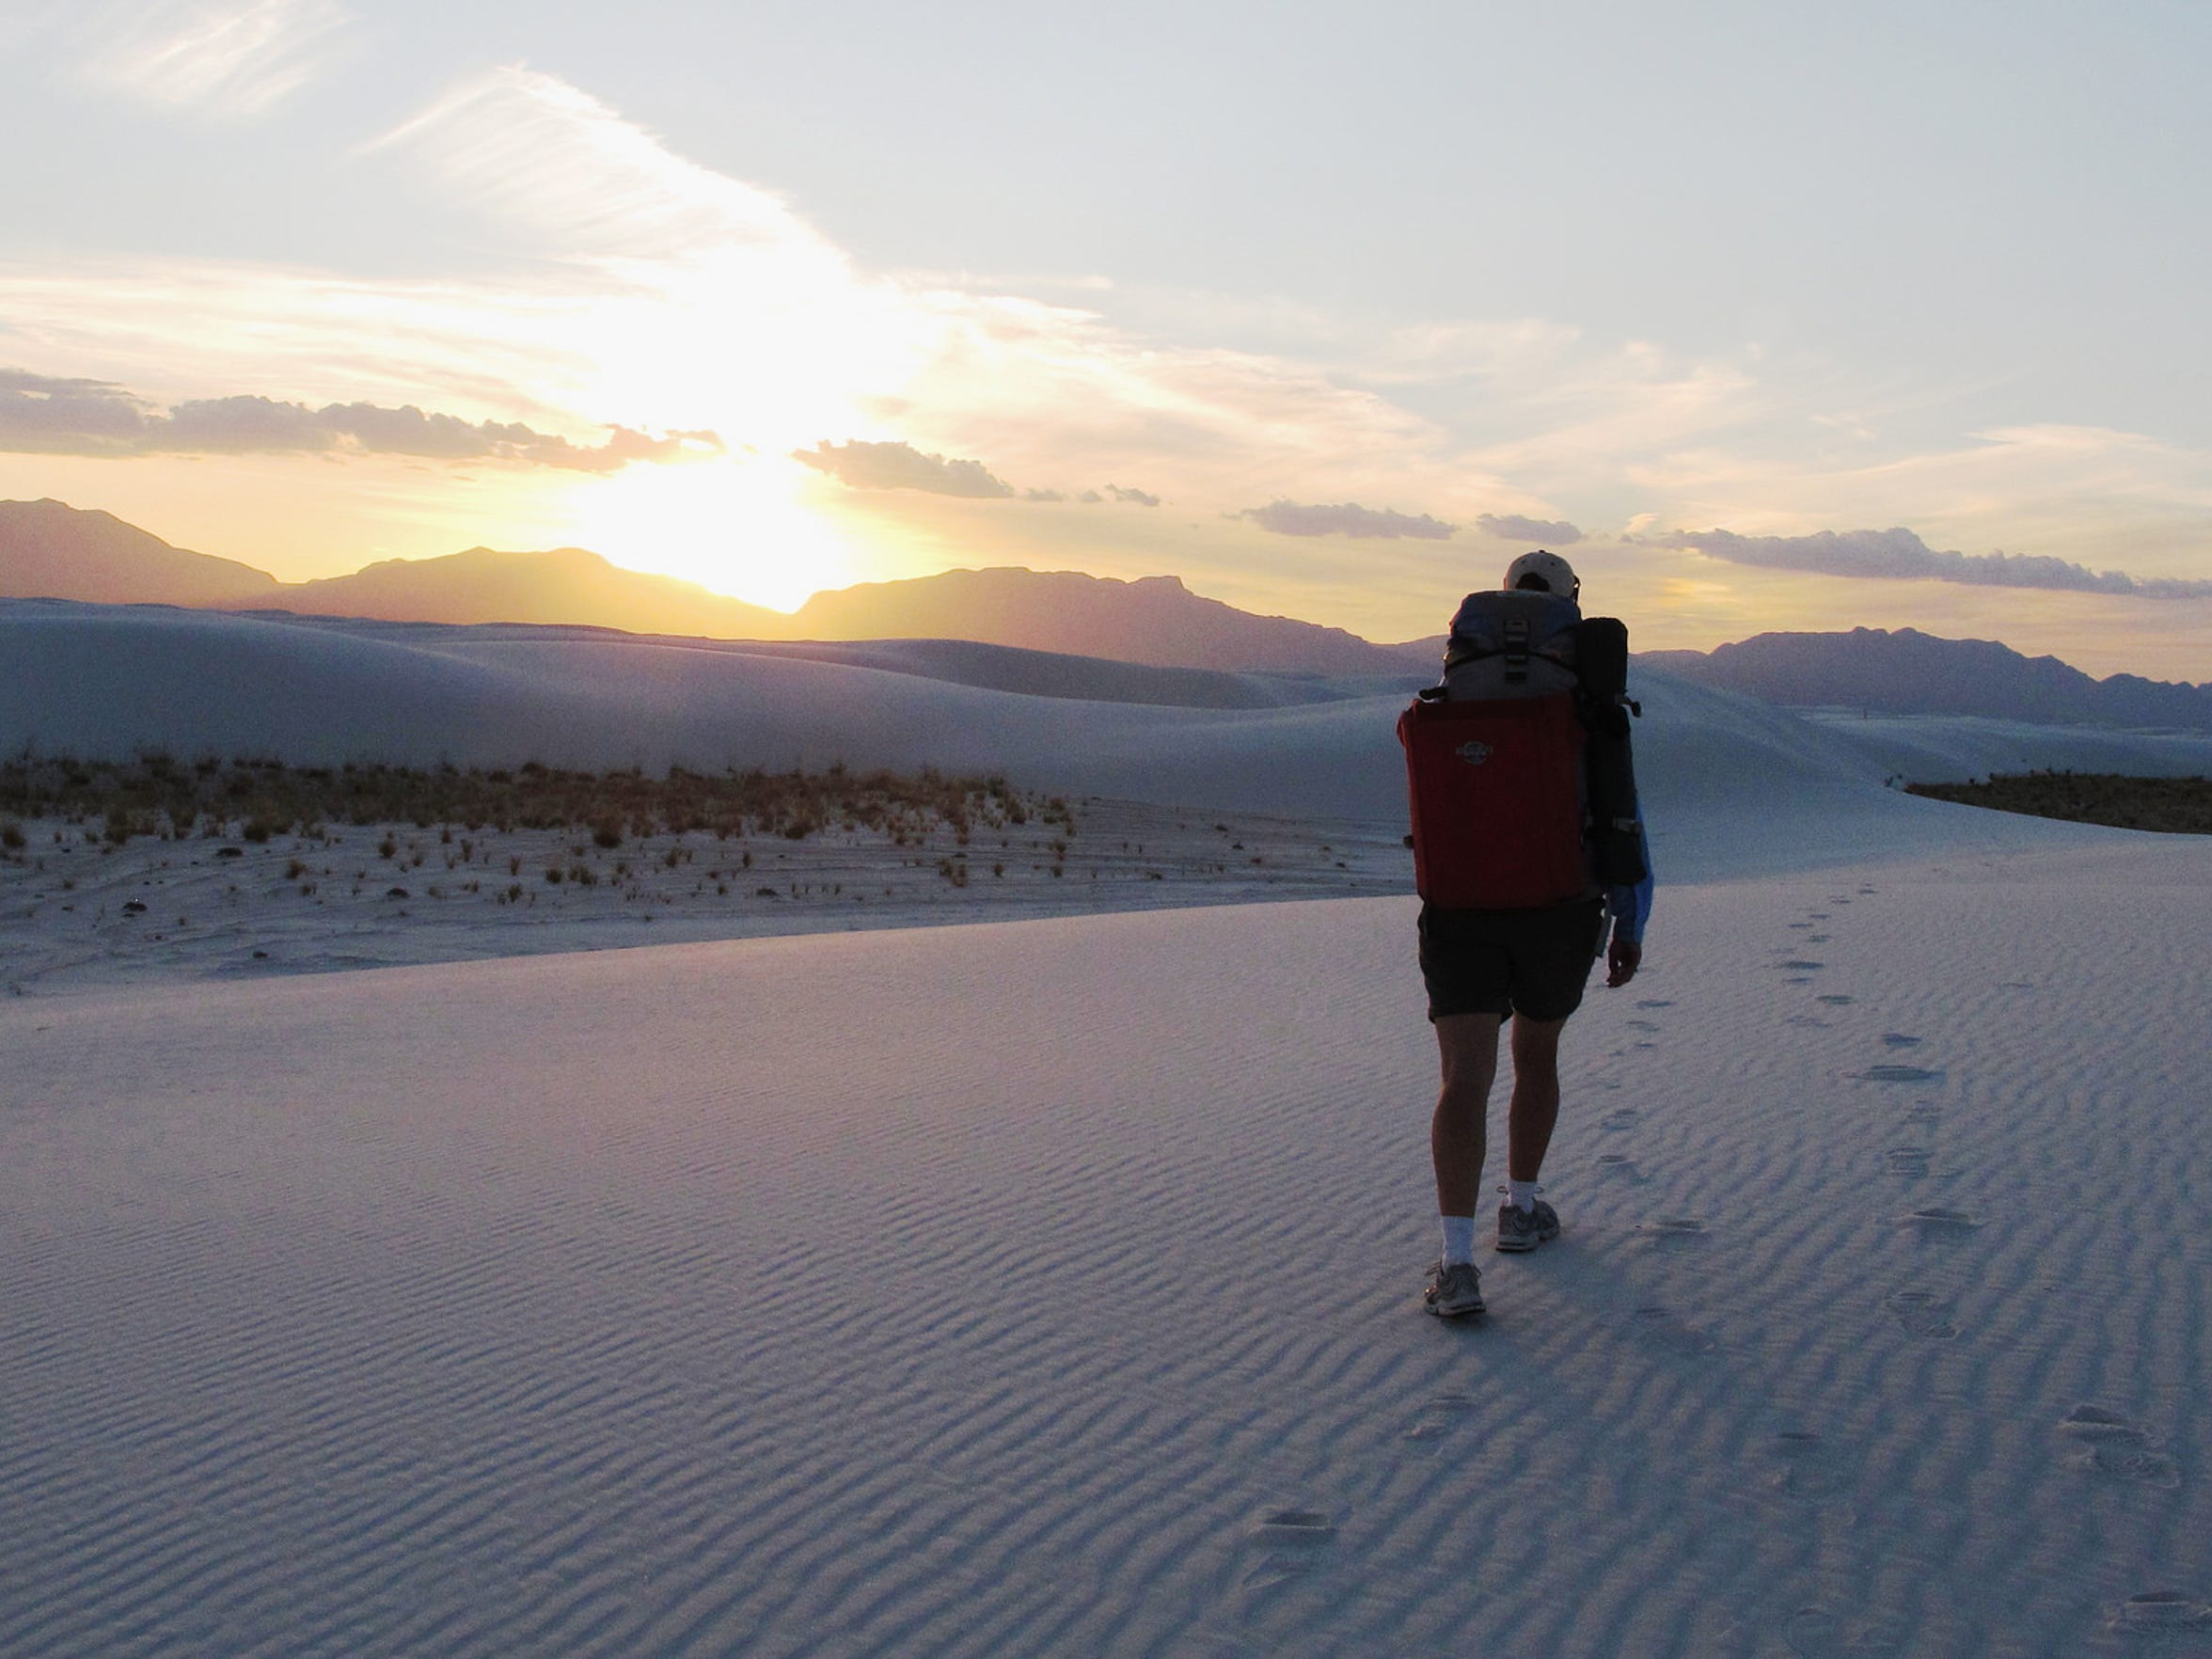 Visitors to White Sands National Monument can hike